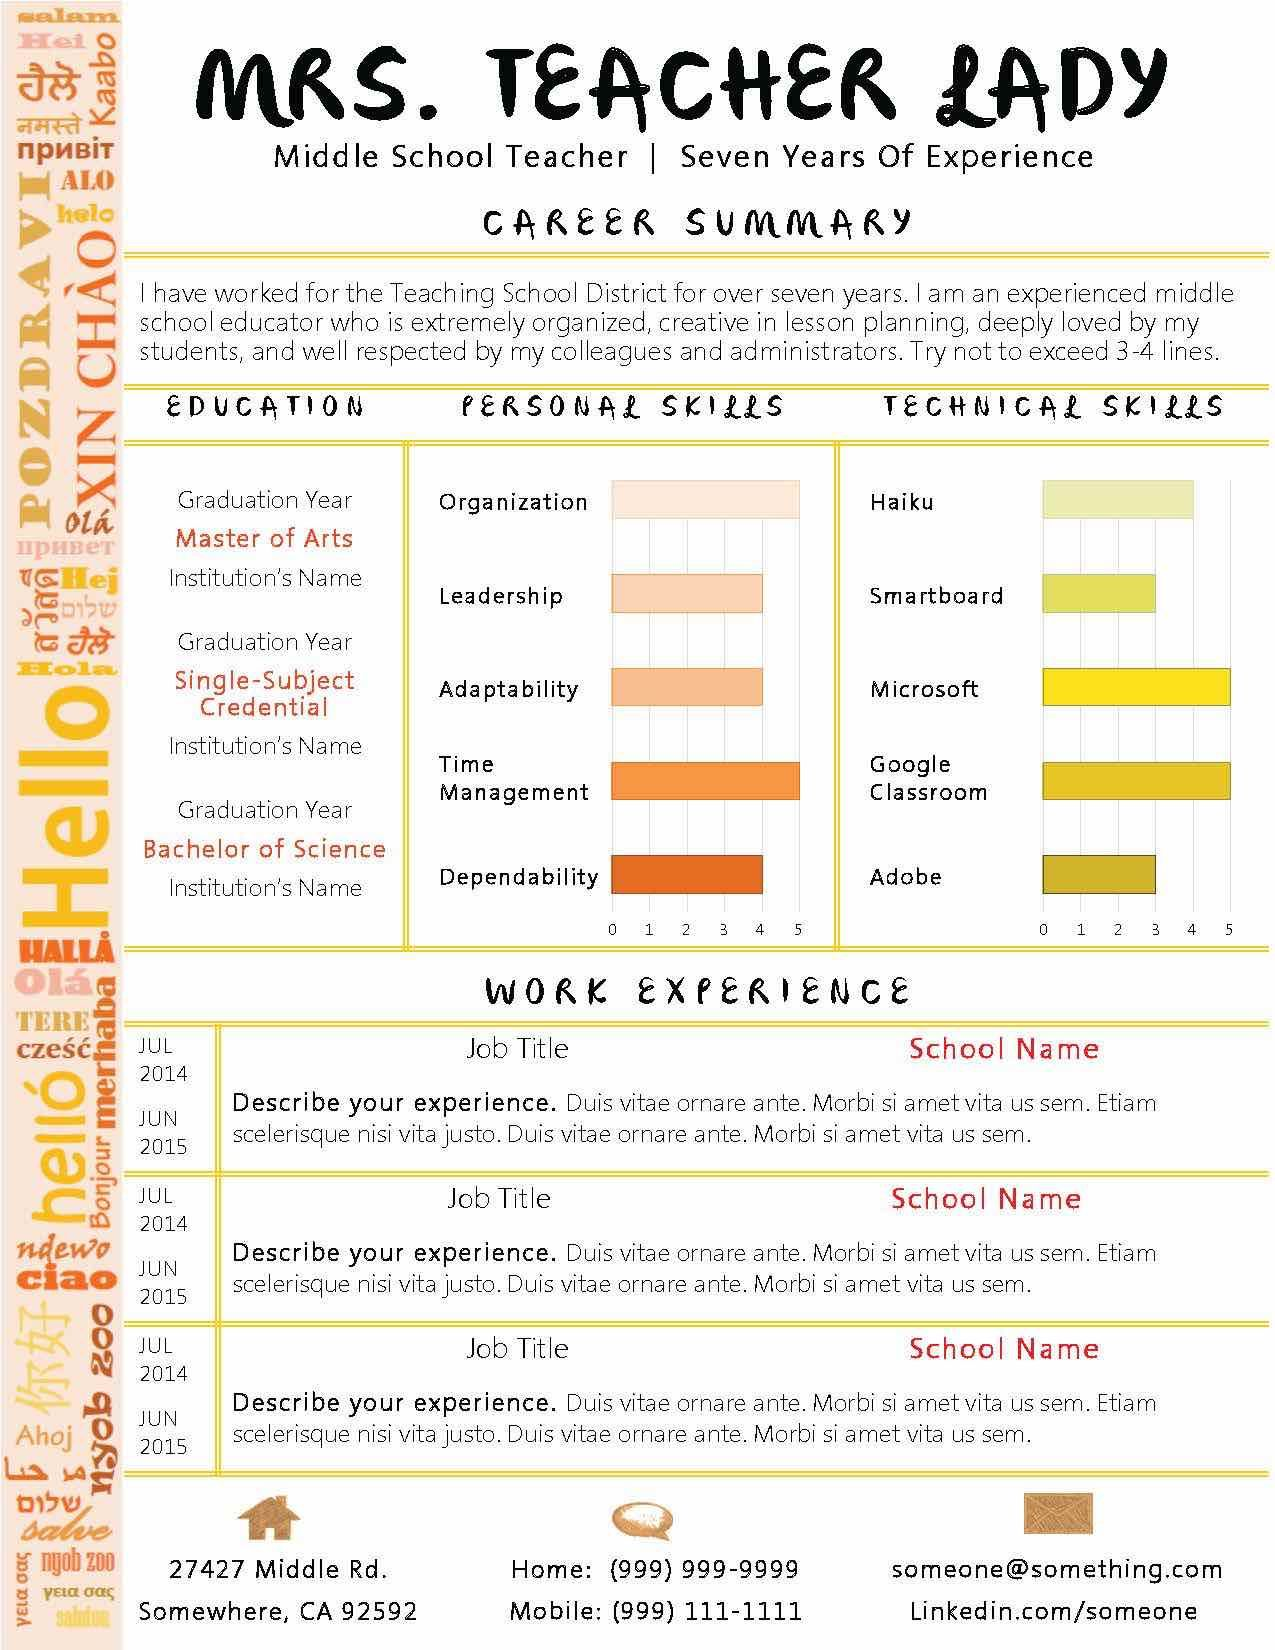 Autumn Colors Teacher Resume. Make your cover letter and